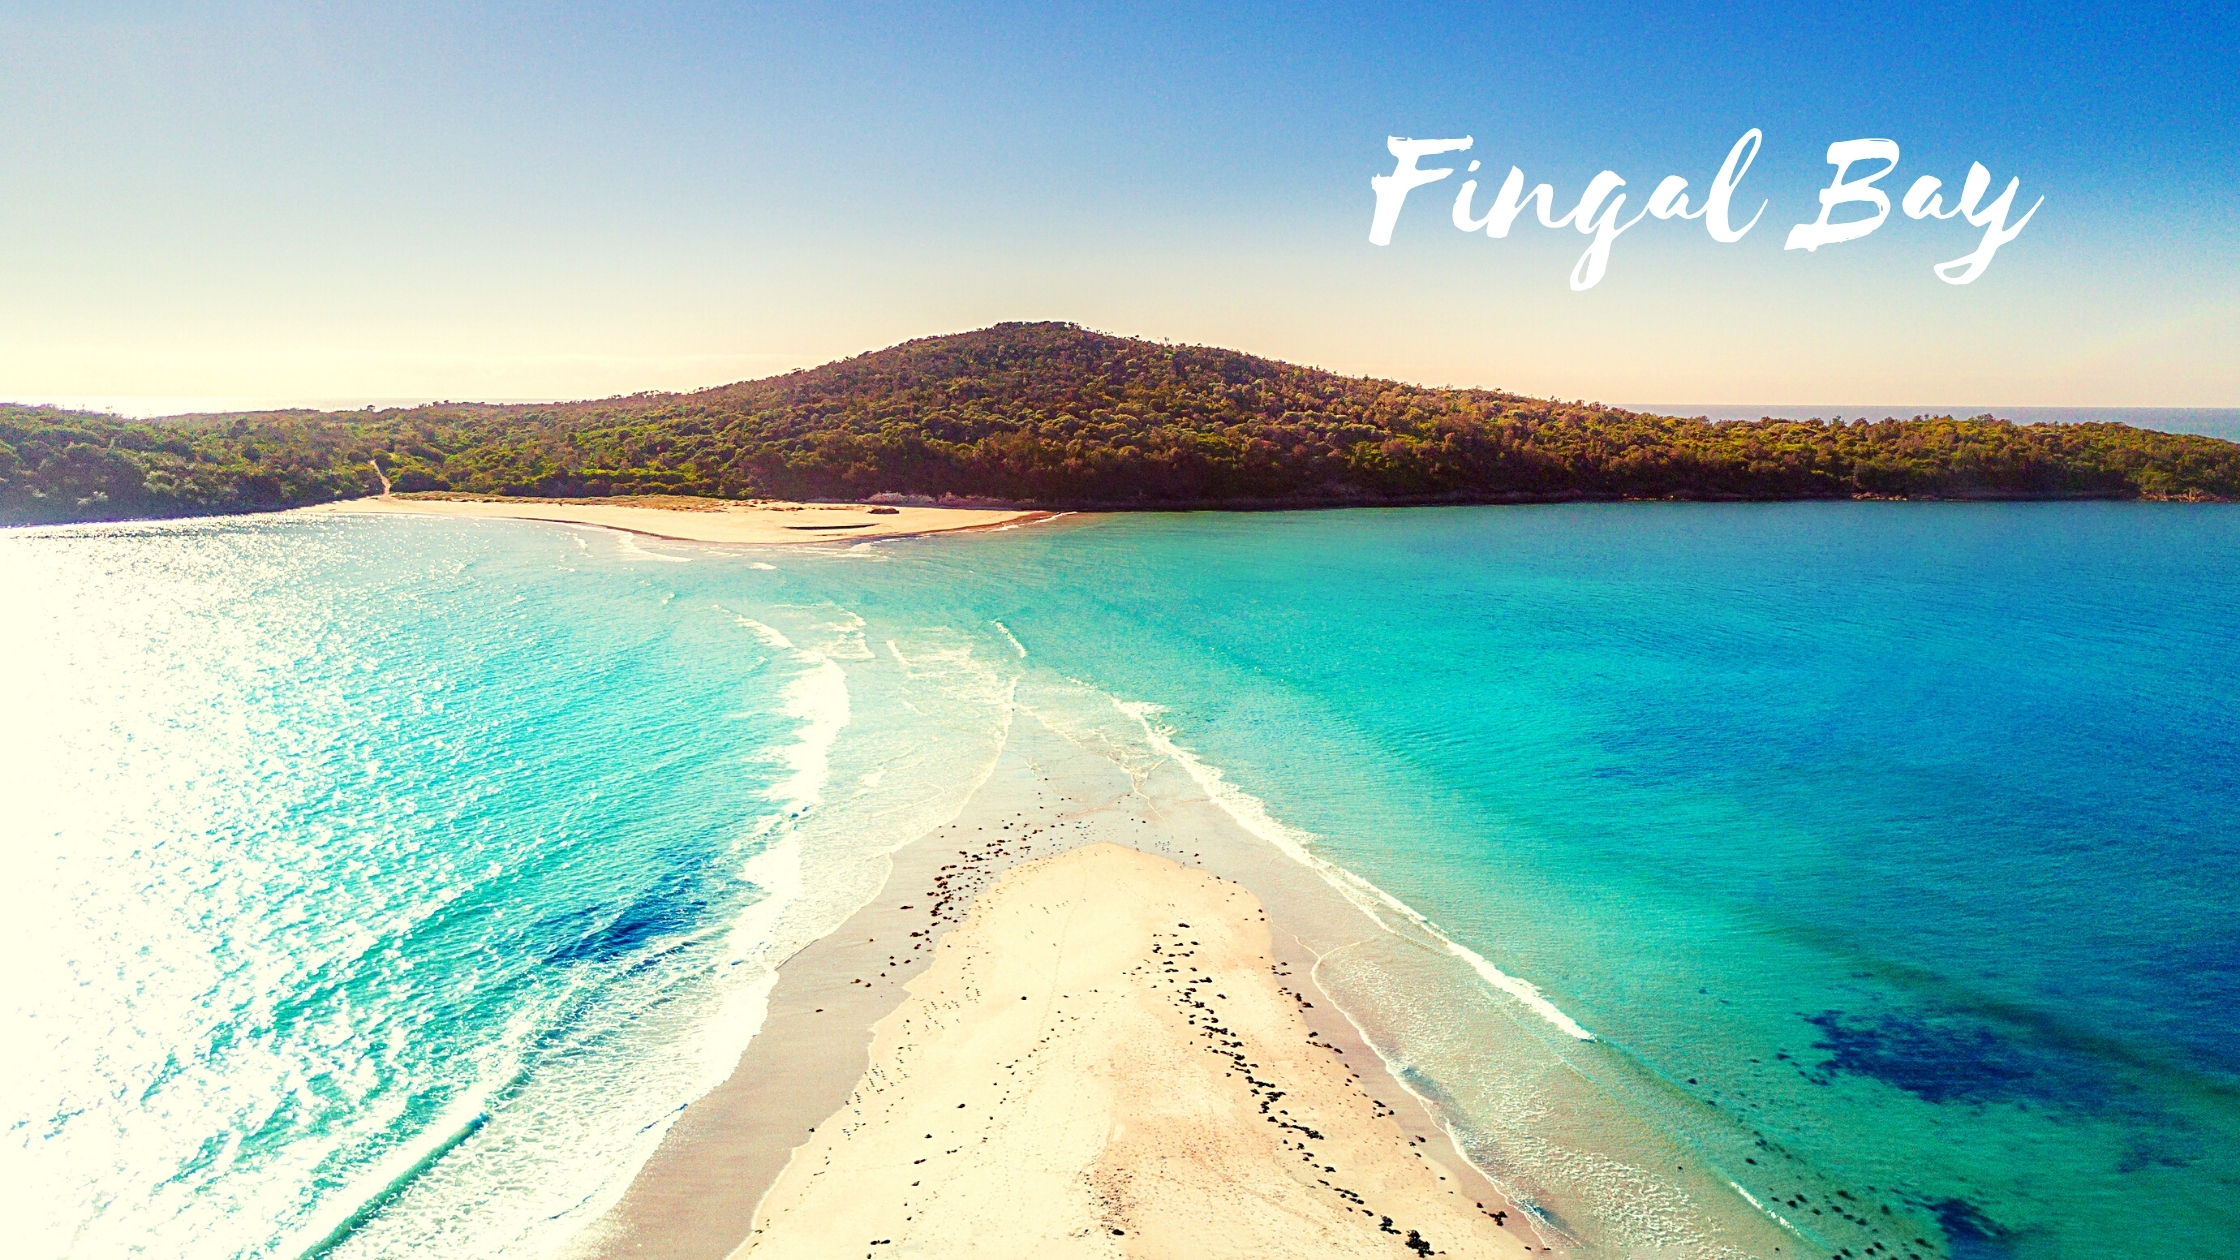 Fingal Bay Spit, Port Stephens, New South Wales